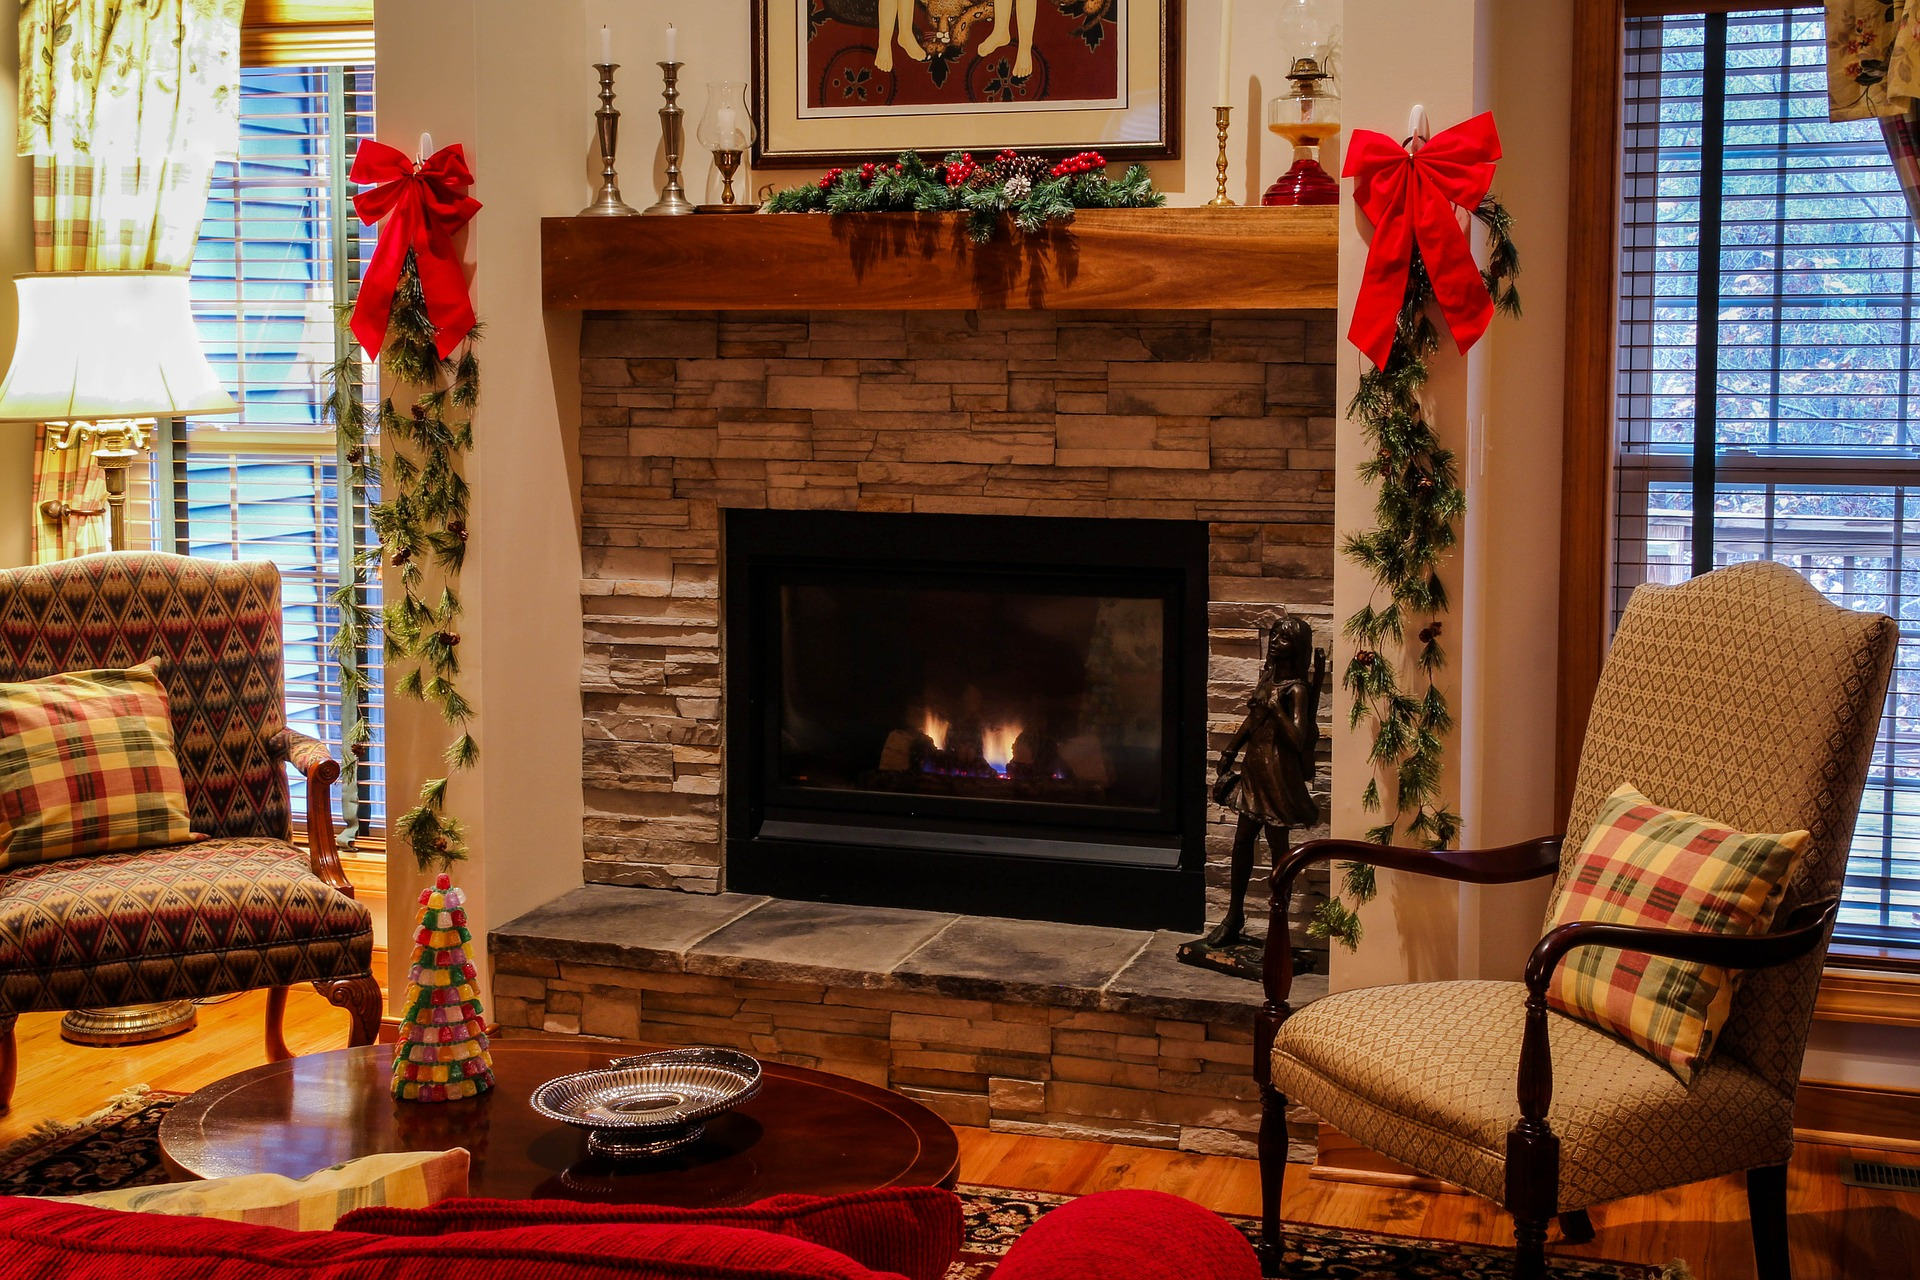 6 Reasons Why Gas Fireplaces Are Worth the Investment